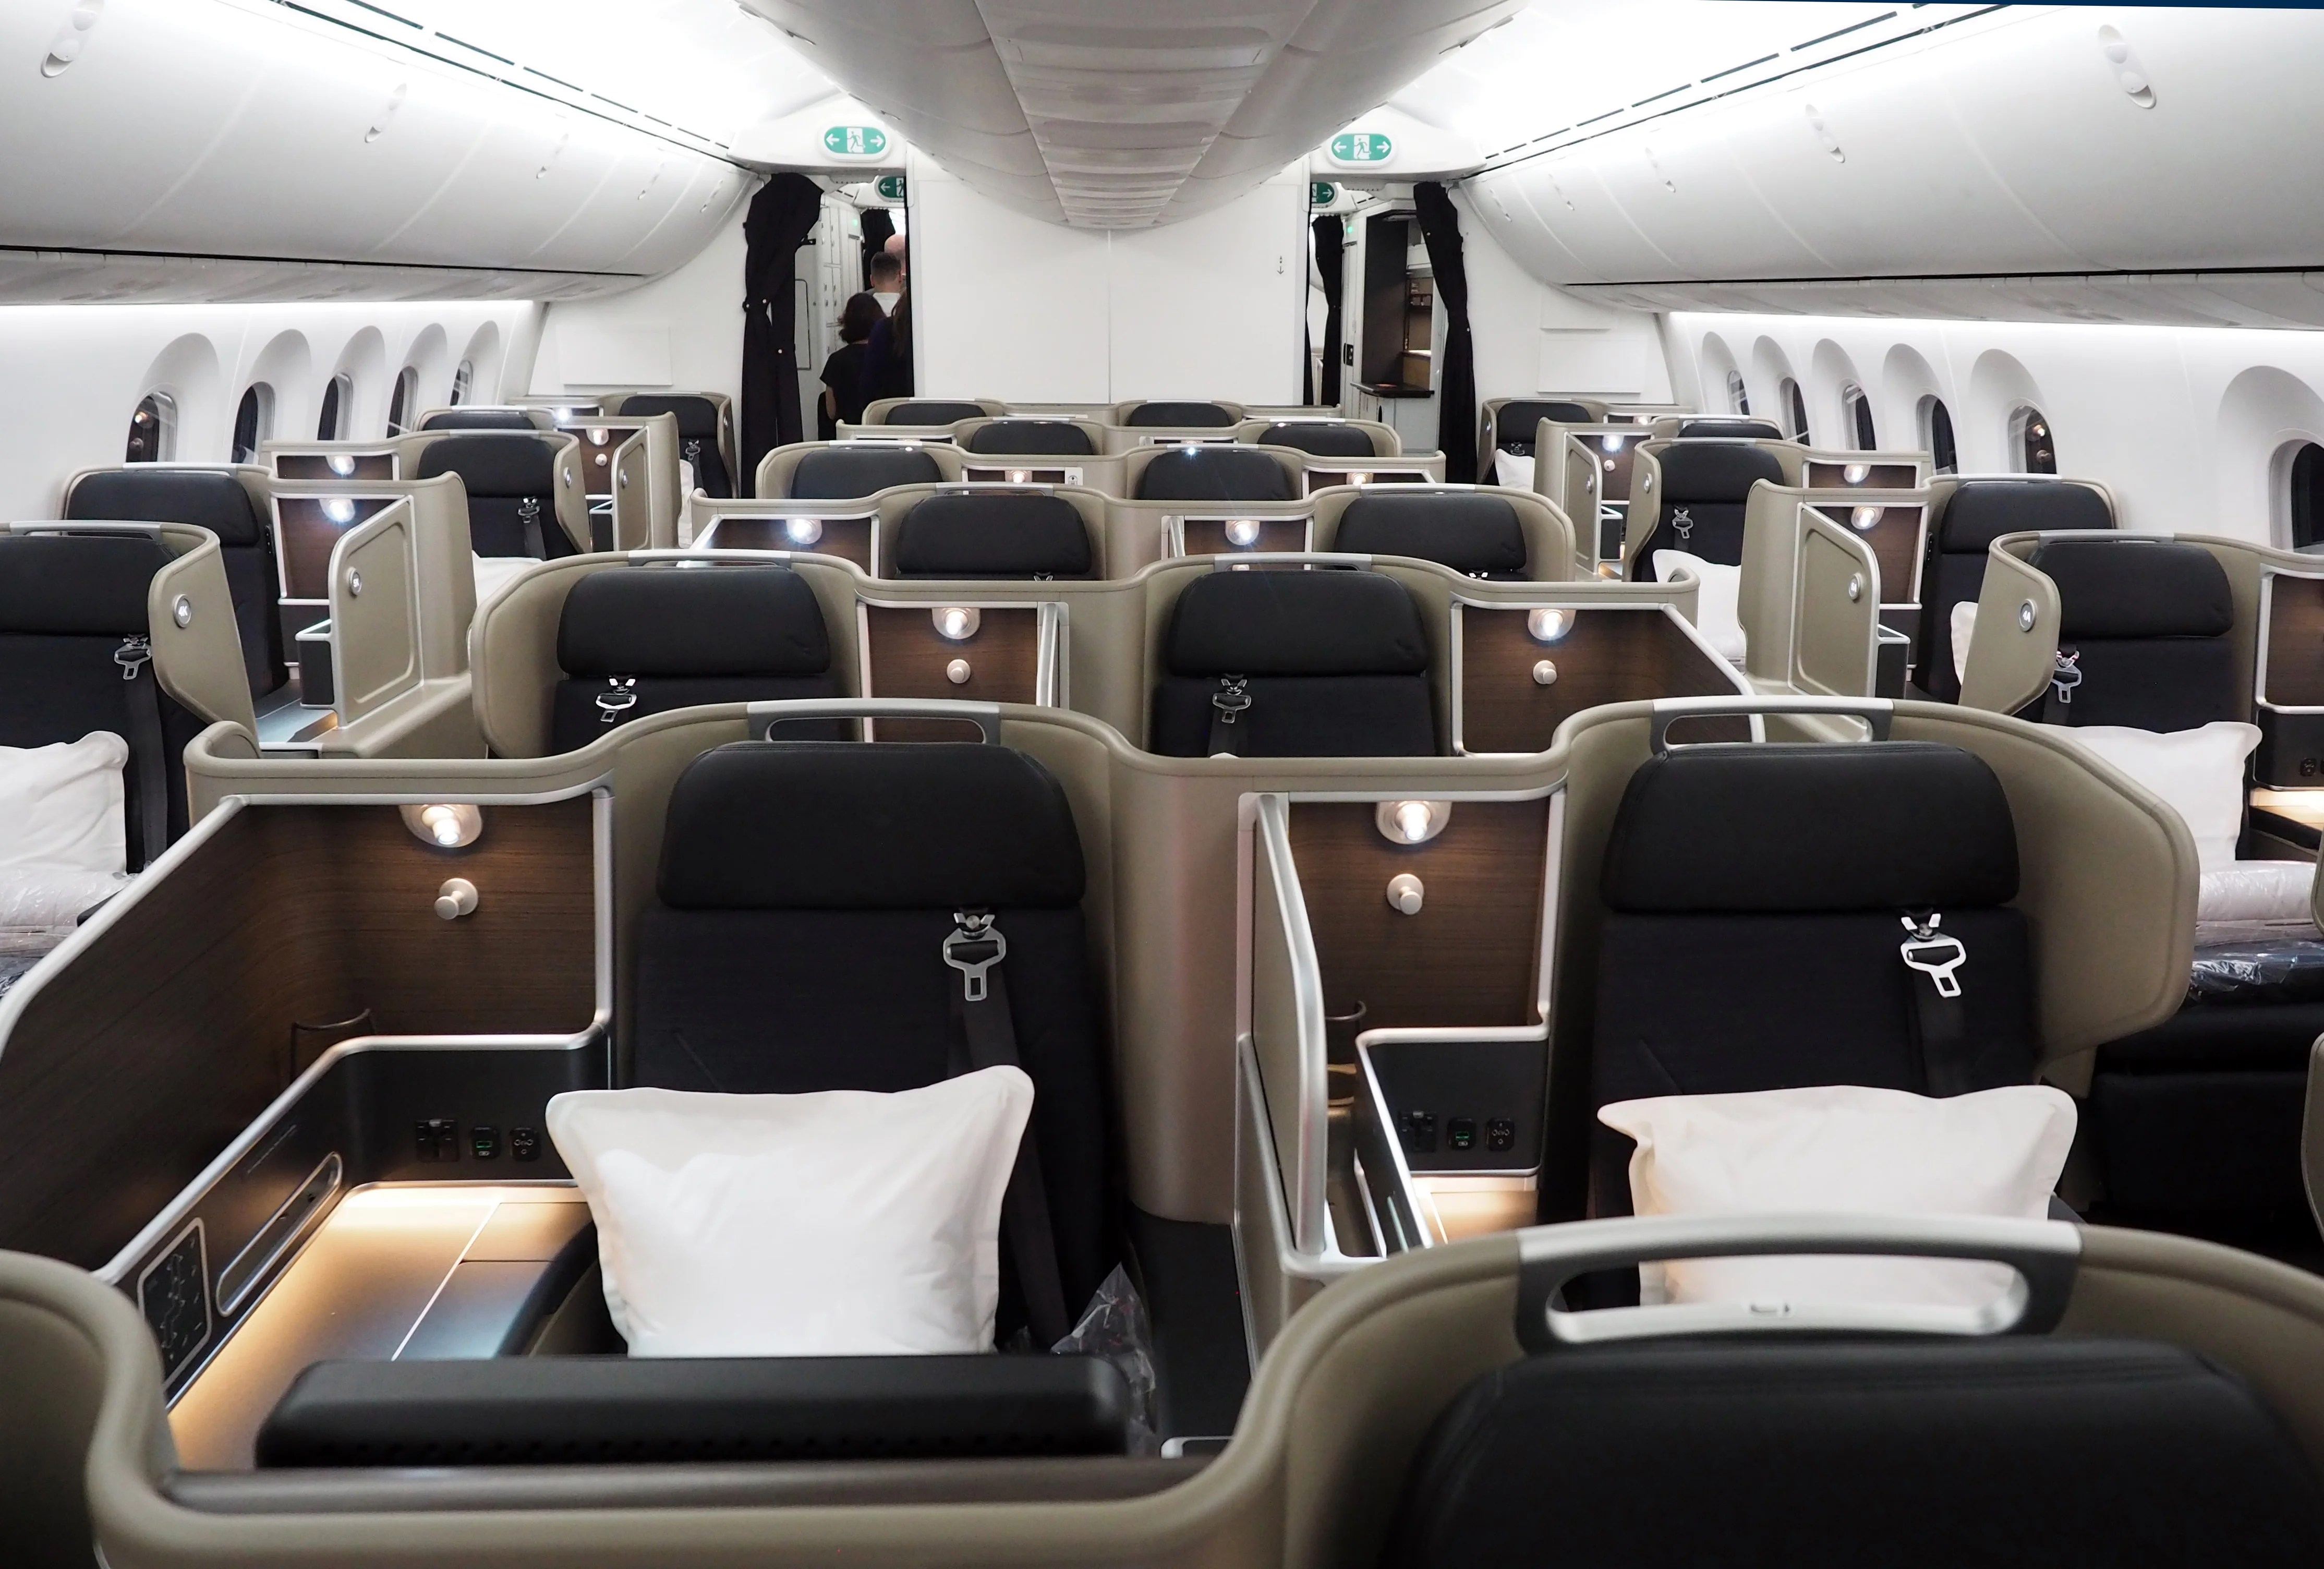 Inside the Aircraft That Will Operate World's Longest Flight